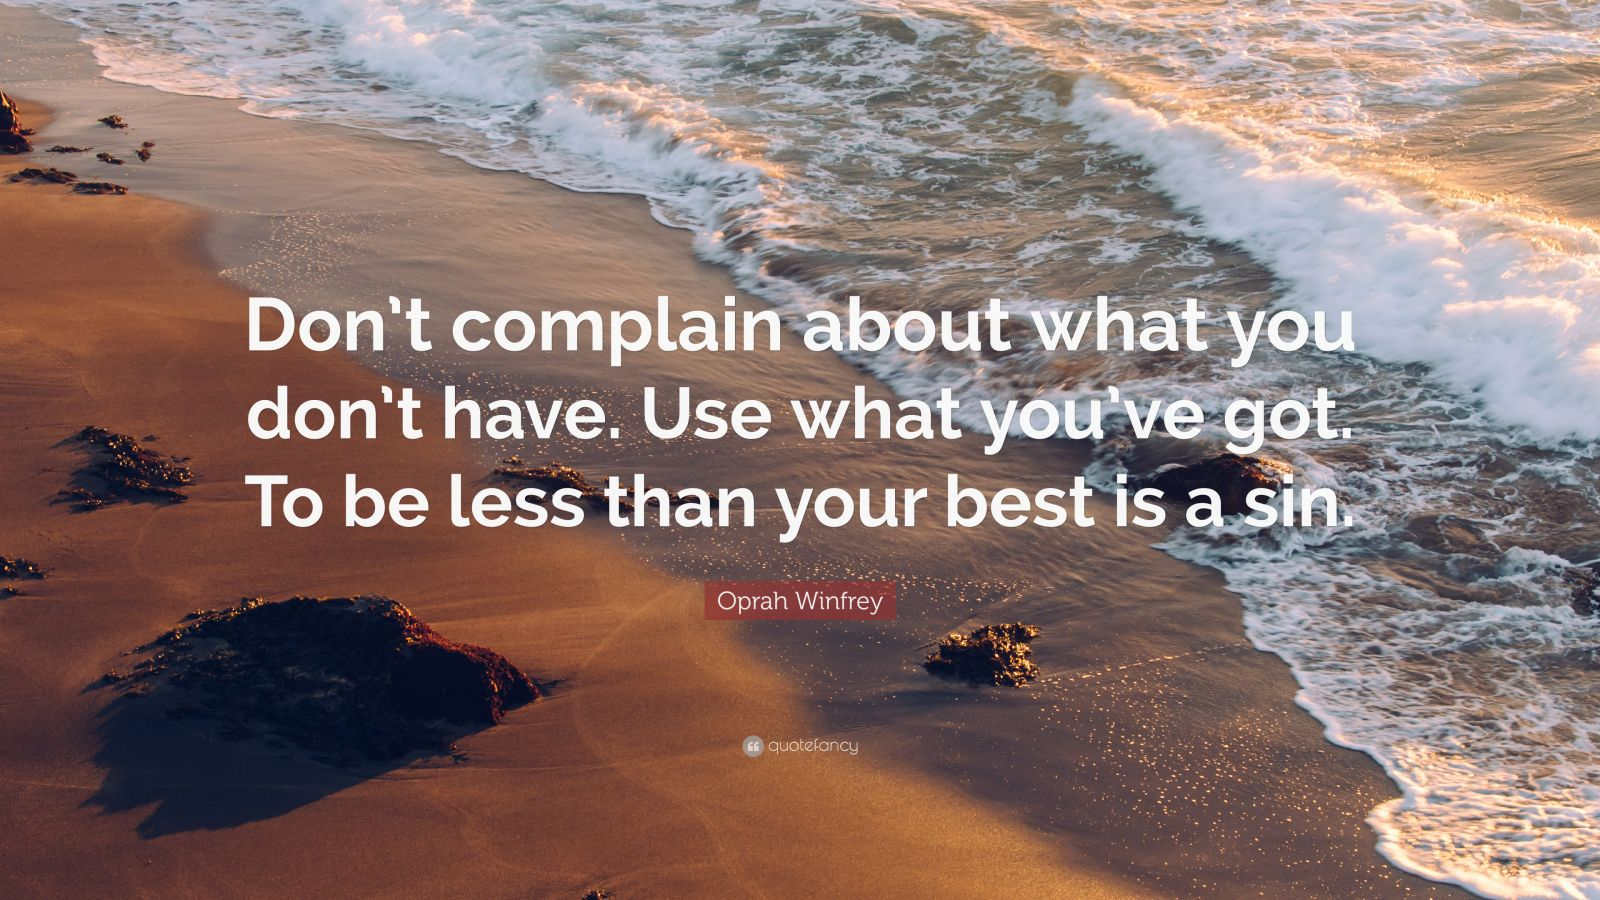 """Oprah Winfrey Quote: """"Don't complain about what you don't have. Use what you've got. To be less than your best is a sin."""""""